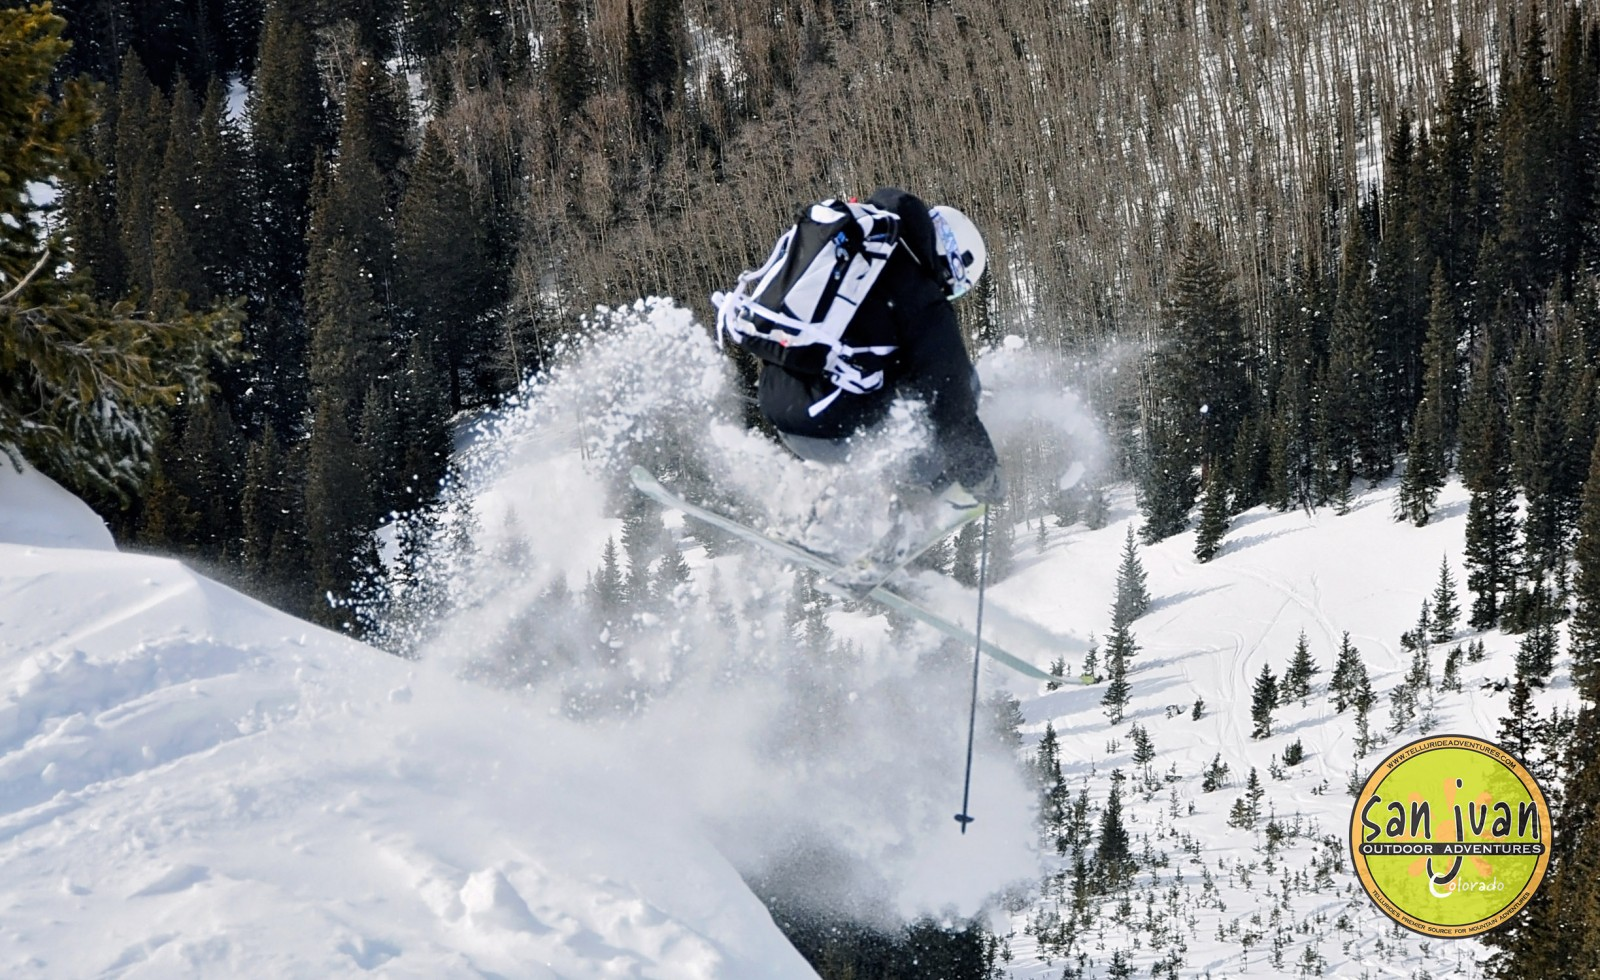 Backcountry skier launches of pillow of snow in Telluride Colorado